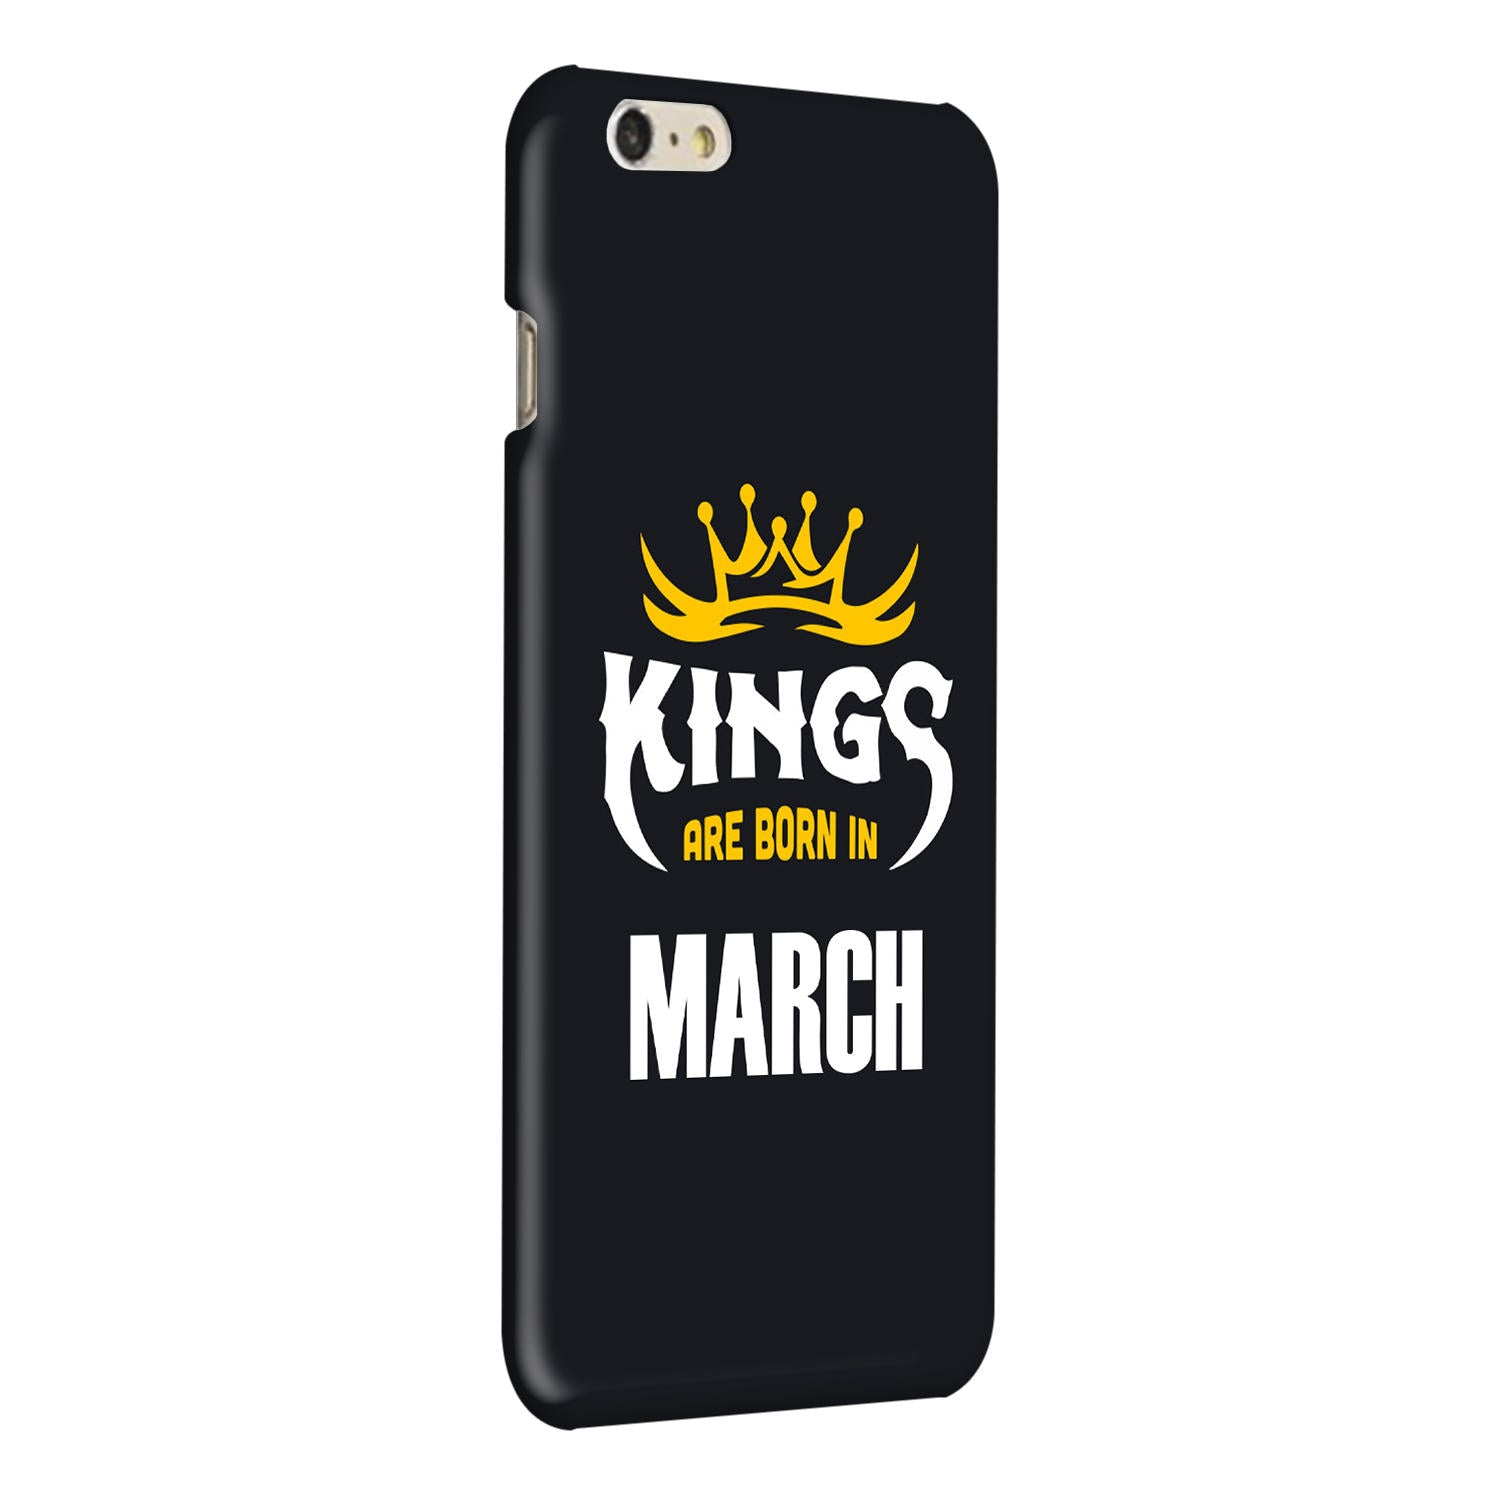 Kings March - Narcissist iPhone 6 Plus Mobile Cover Case